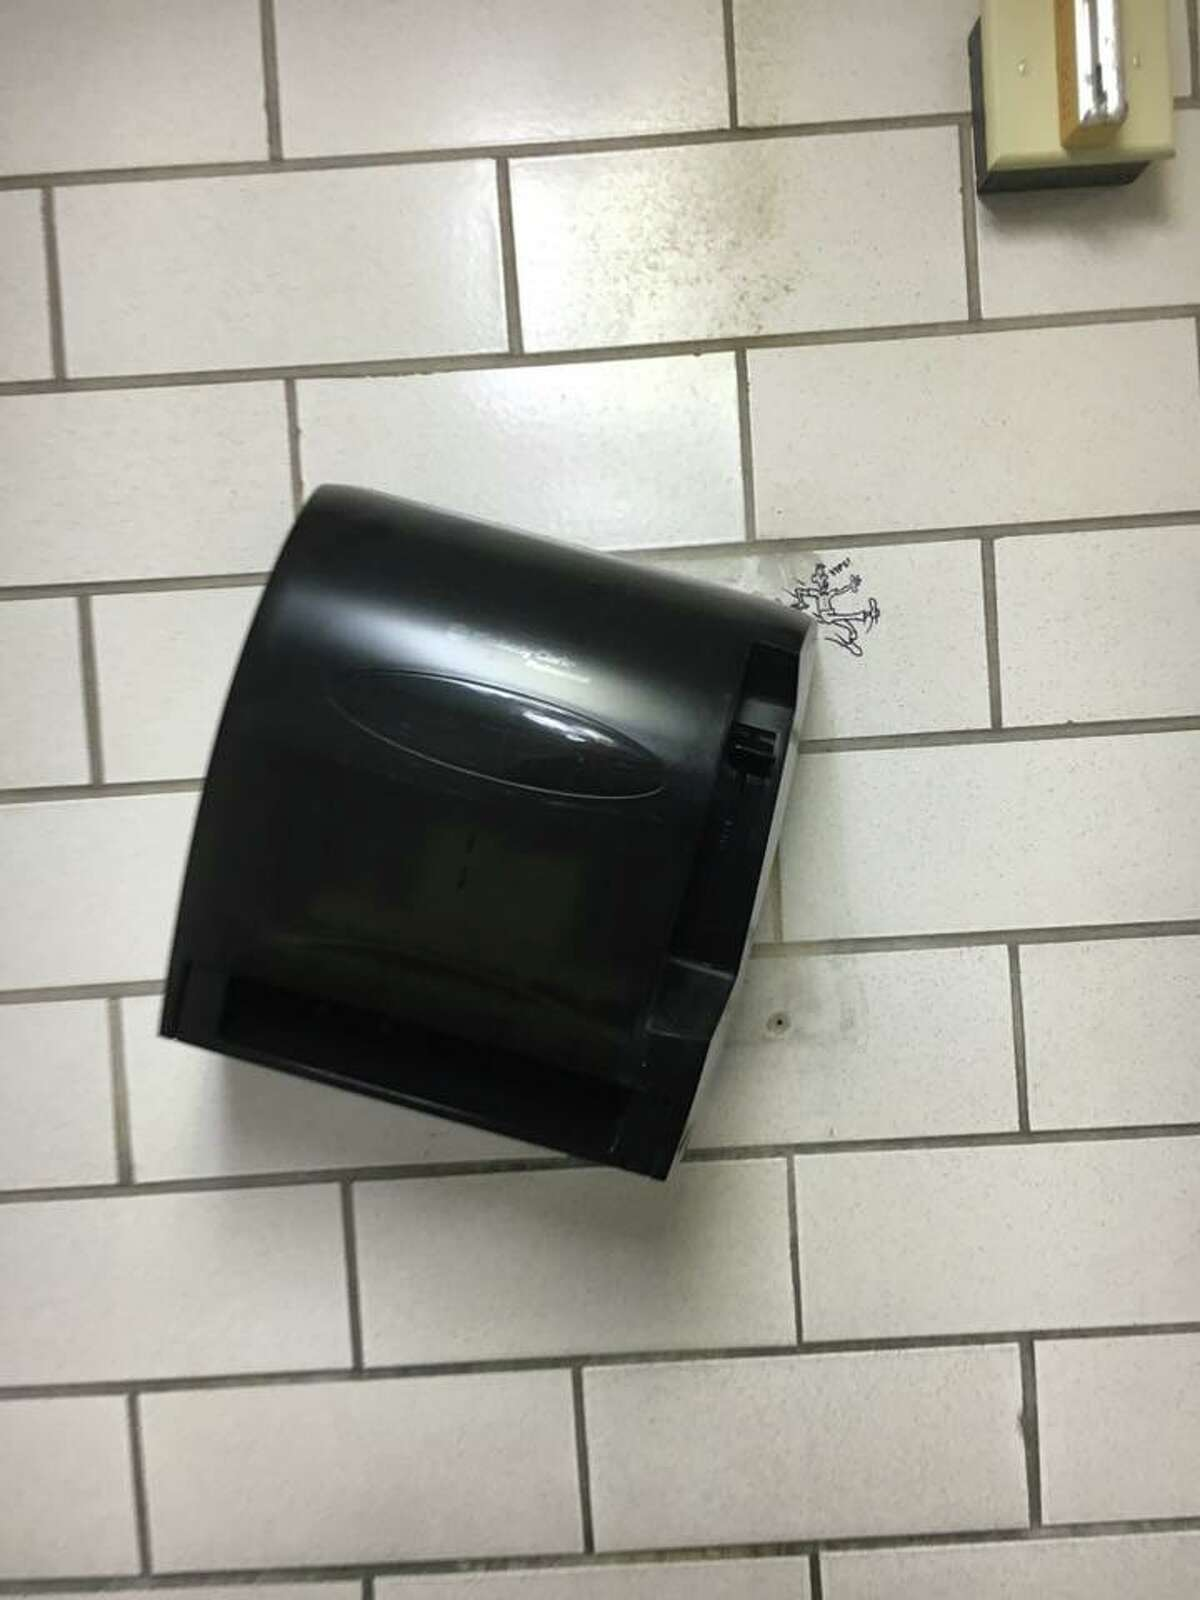 Angled paper towel dispenser.